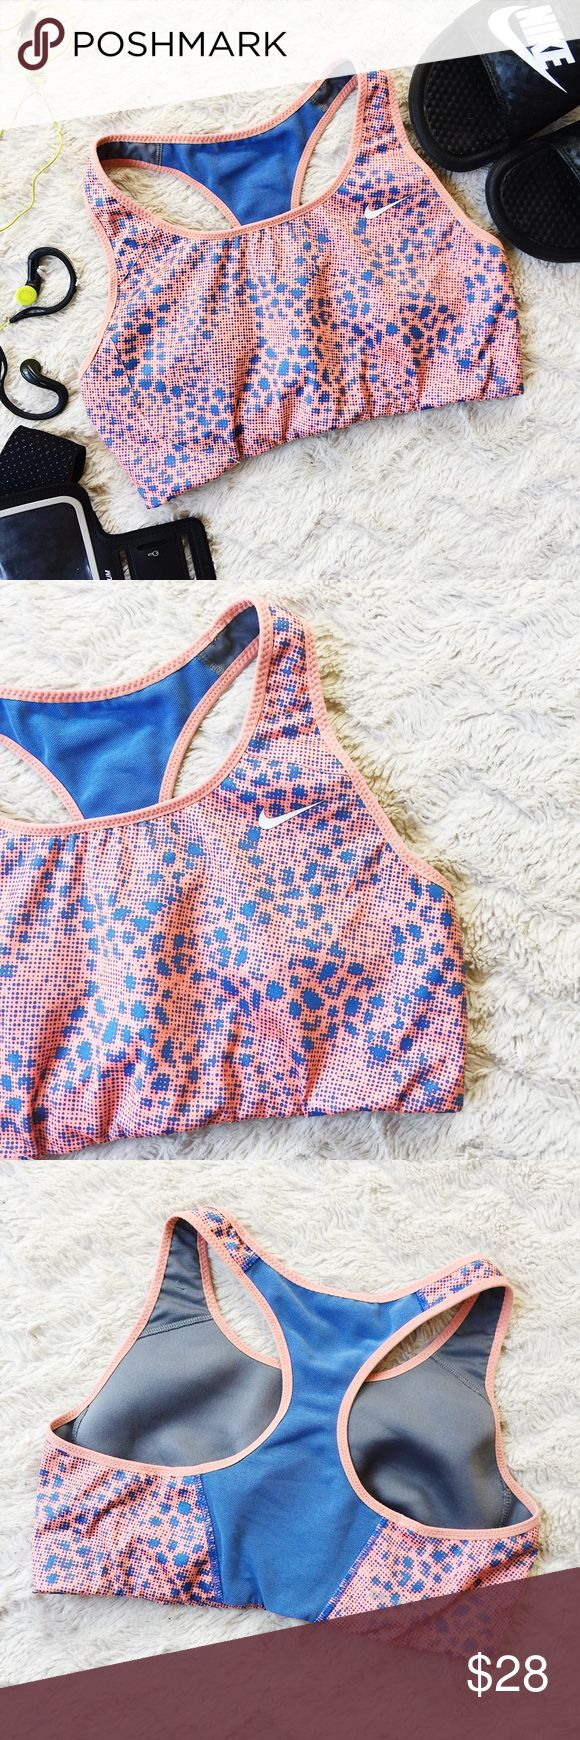 ✔️Nike dri-fit Patterned Sports Bra ✔️ Nike dri-fit Patterned Sports Bra ✔️Size Medium ✔️Coral pink, Periwinkle blue, and grey ✔️Worn only a number times, in wonderful shape ✔️Don't wear this one enough ✔️No trades, thank you!!! Nike Intimates & Sleepwear